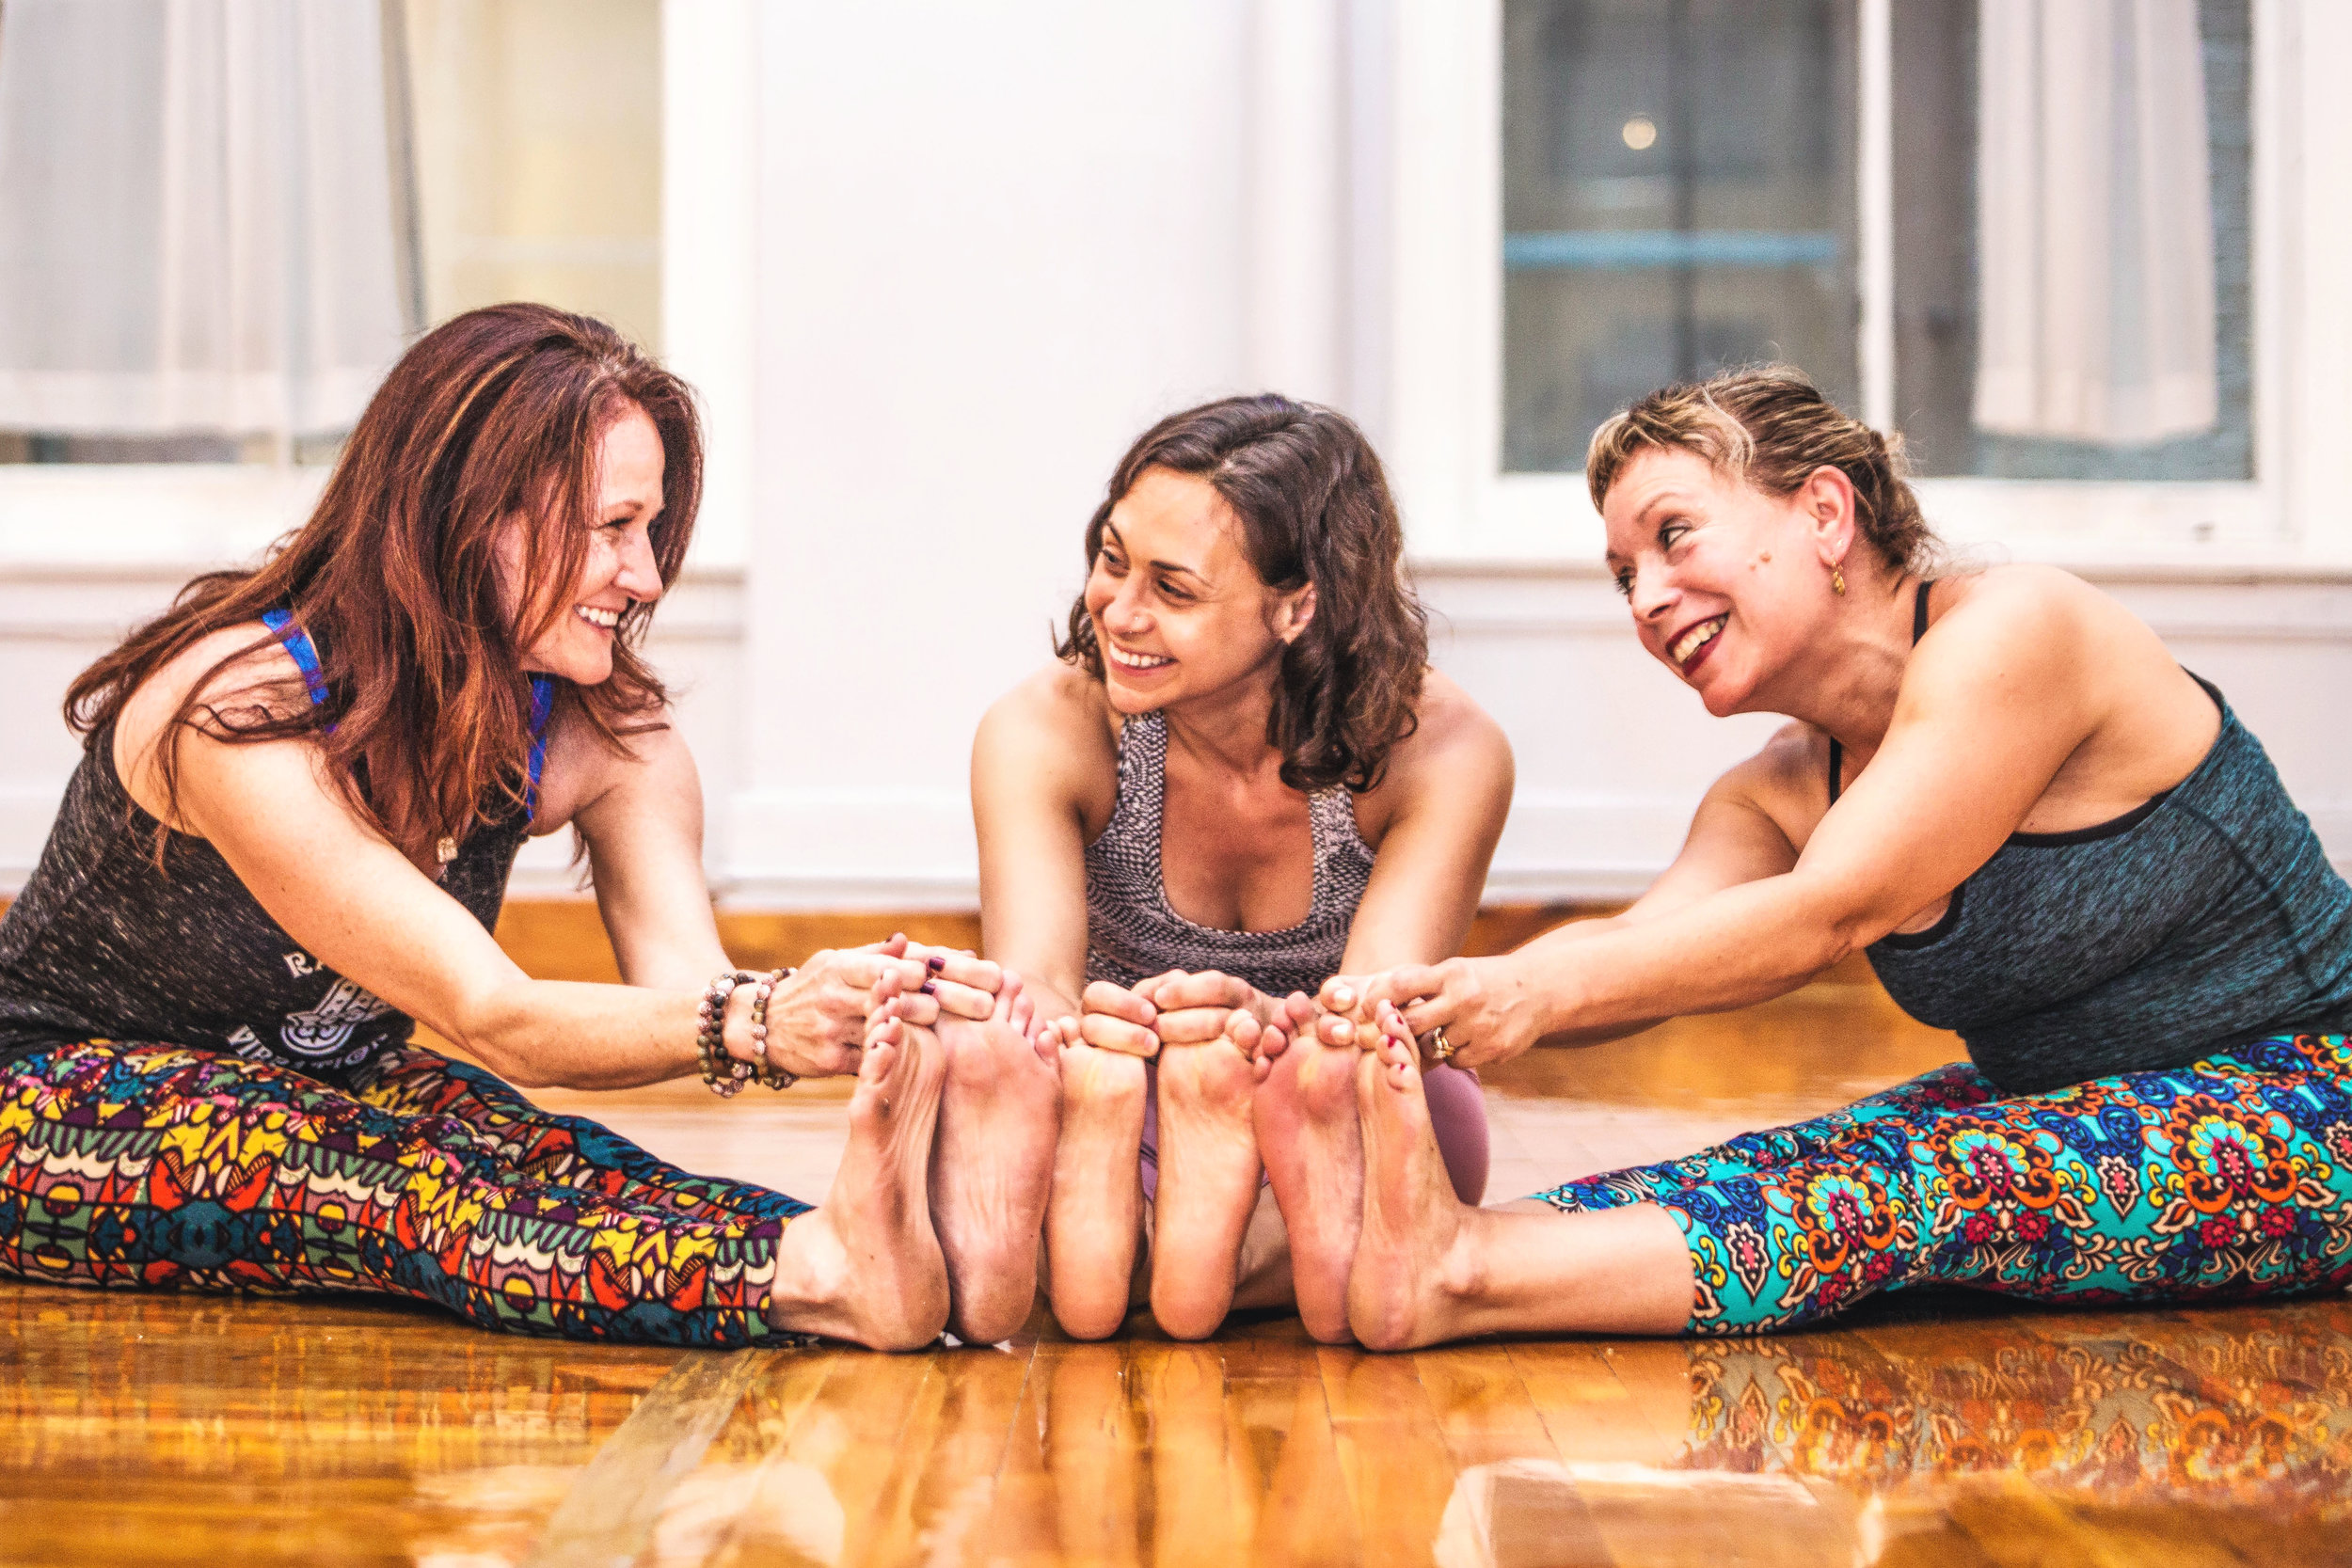 Teach at our studio - We are often looking for committed and skillful teachers to teach Yoga classes at our studio in Soho. If you believe in our motto that great yoga and great prices should not be mutually exclusive and are interested in pursuing opportunities at our studio, please get in touch via this link.